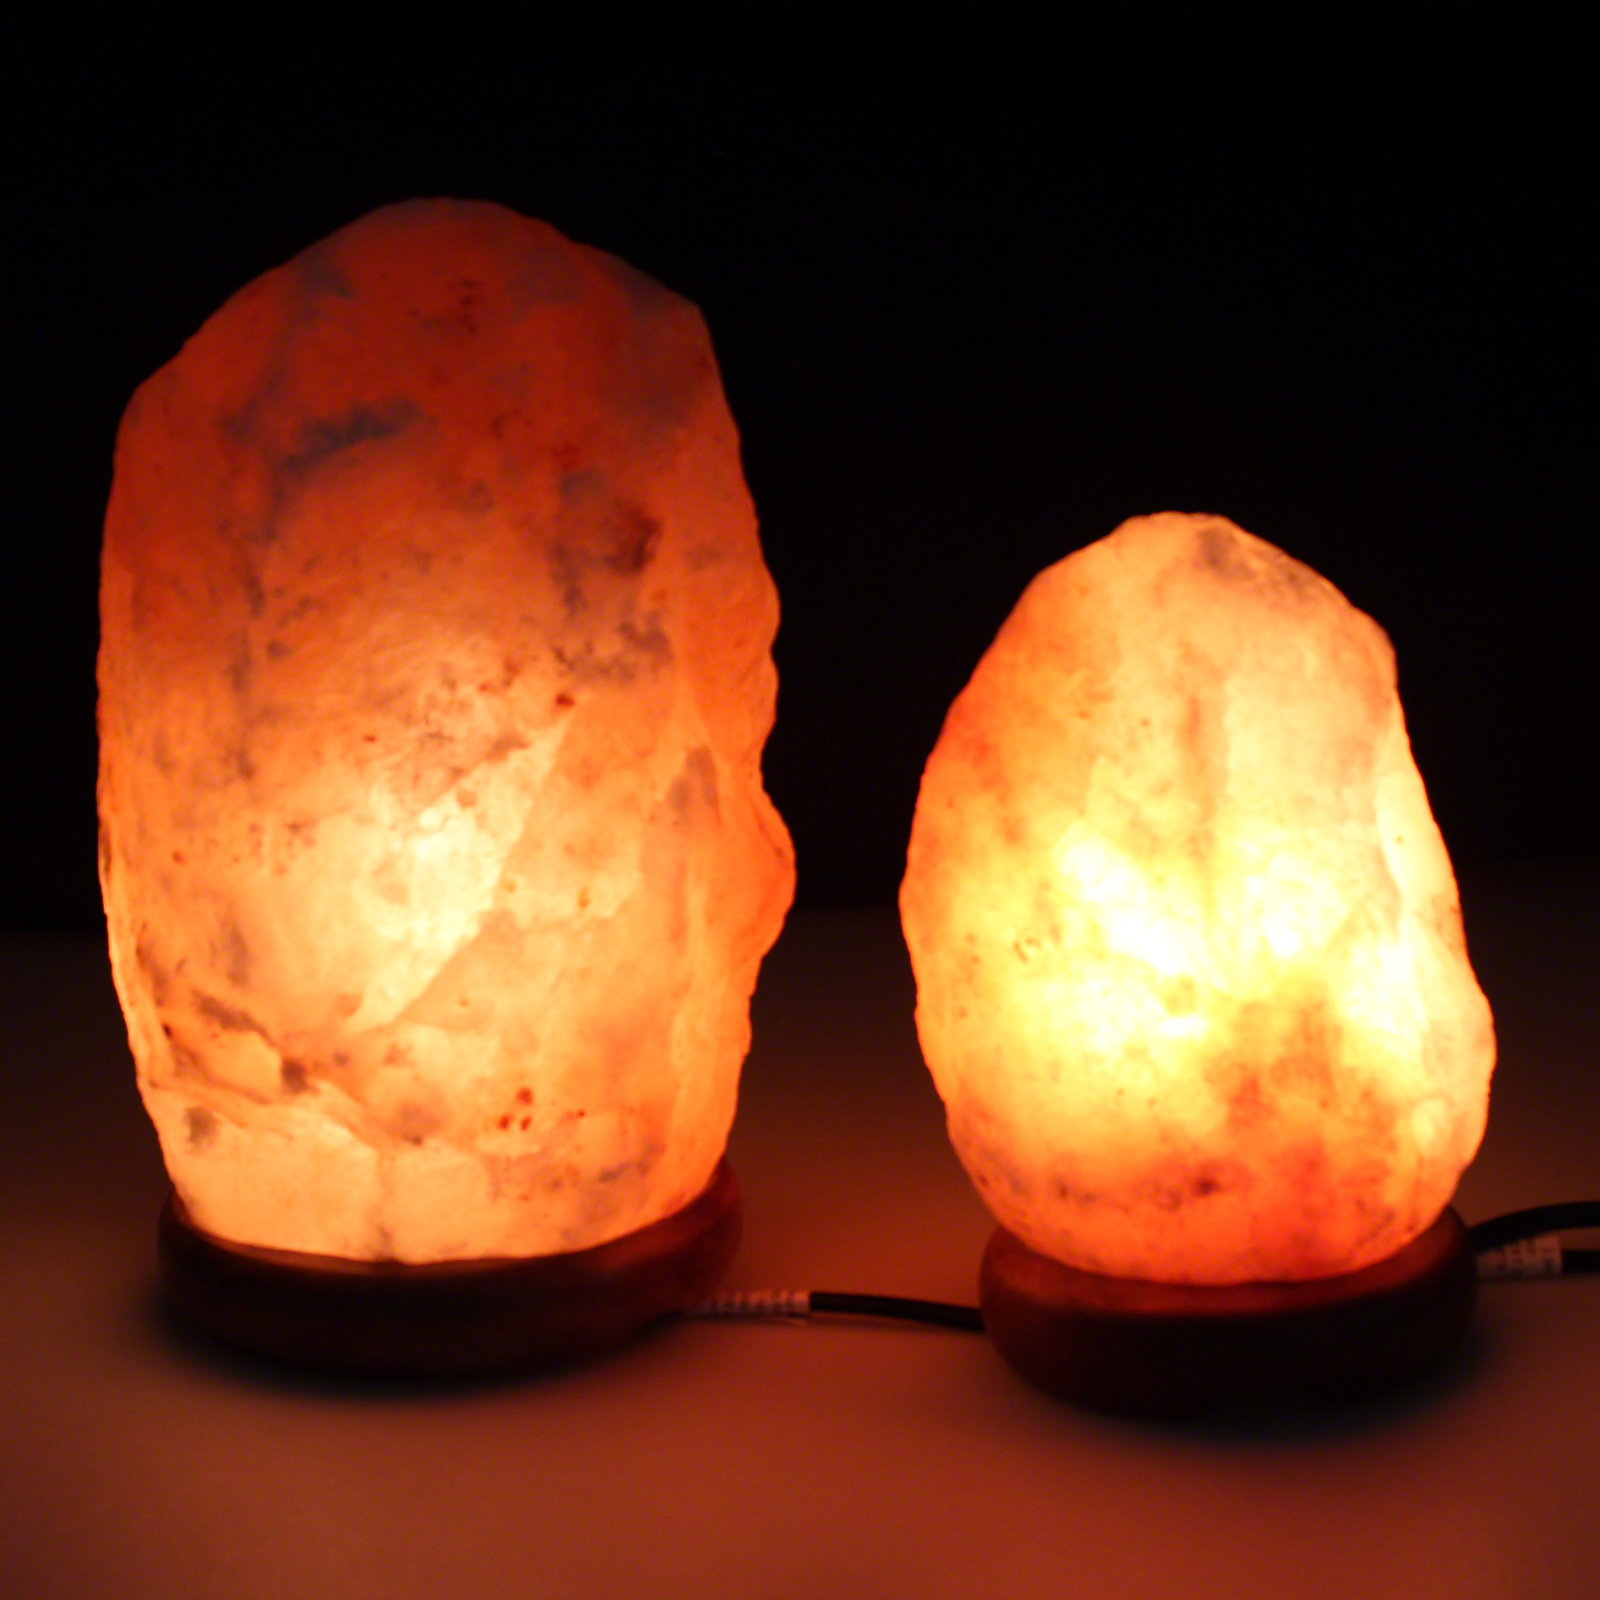 Images Of Salt Lamps : Himalayan Salt Lamps - Party Supplies - Countyfetes